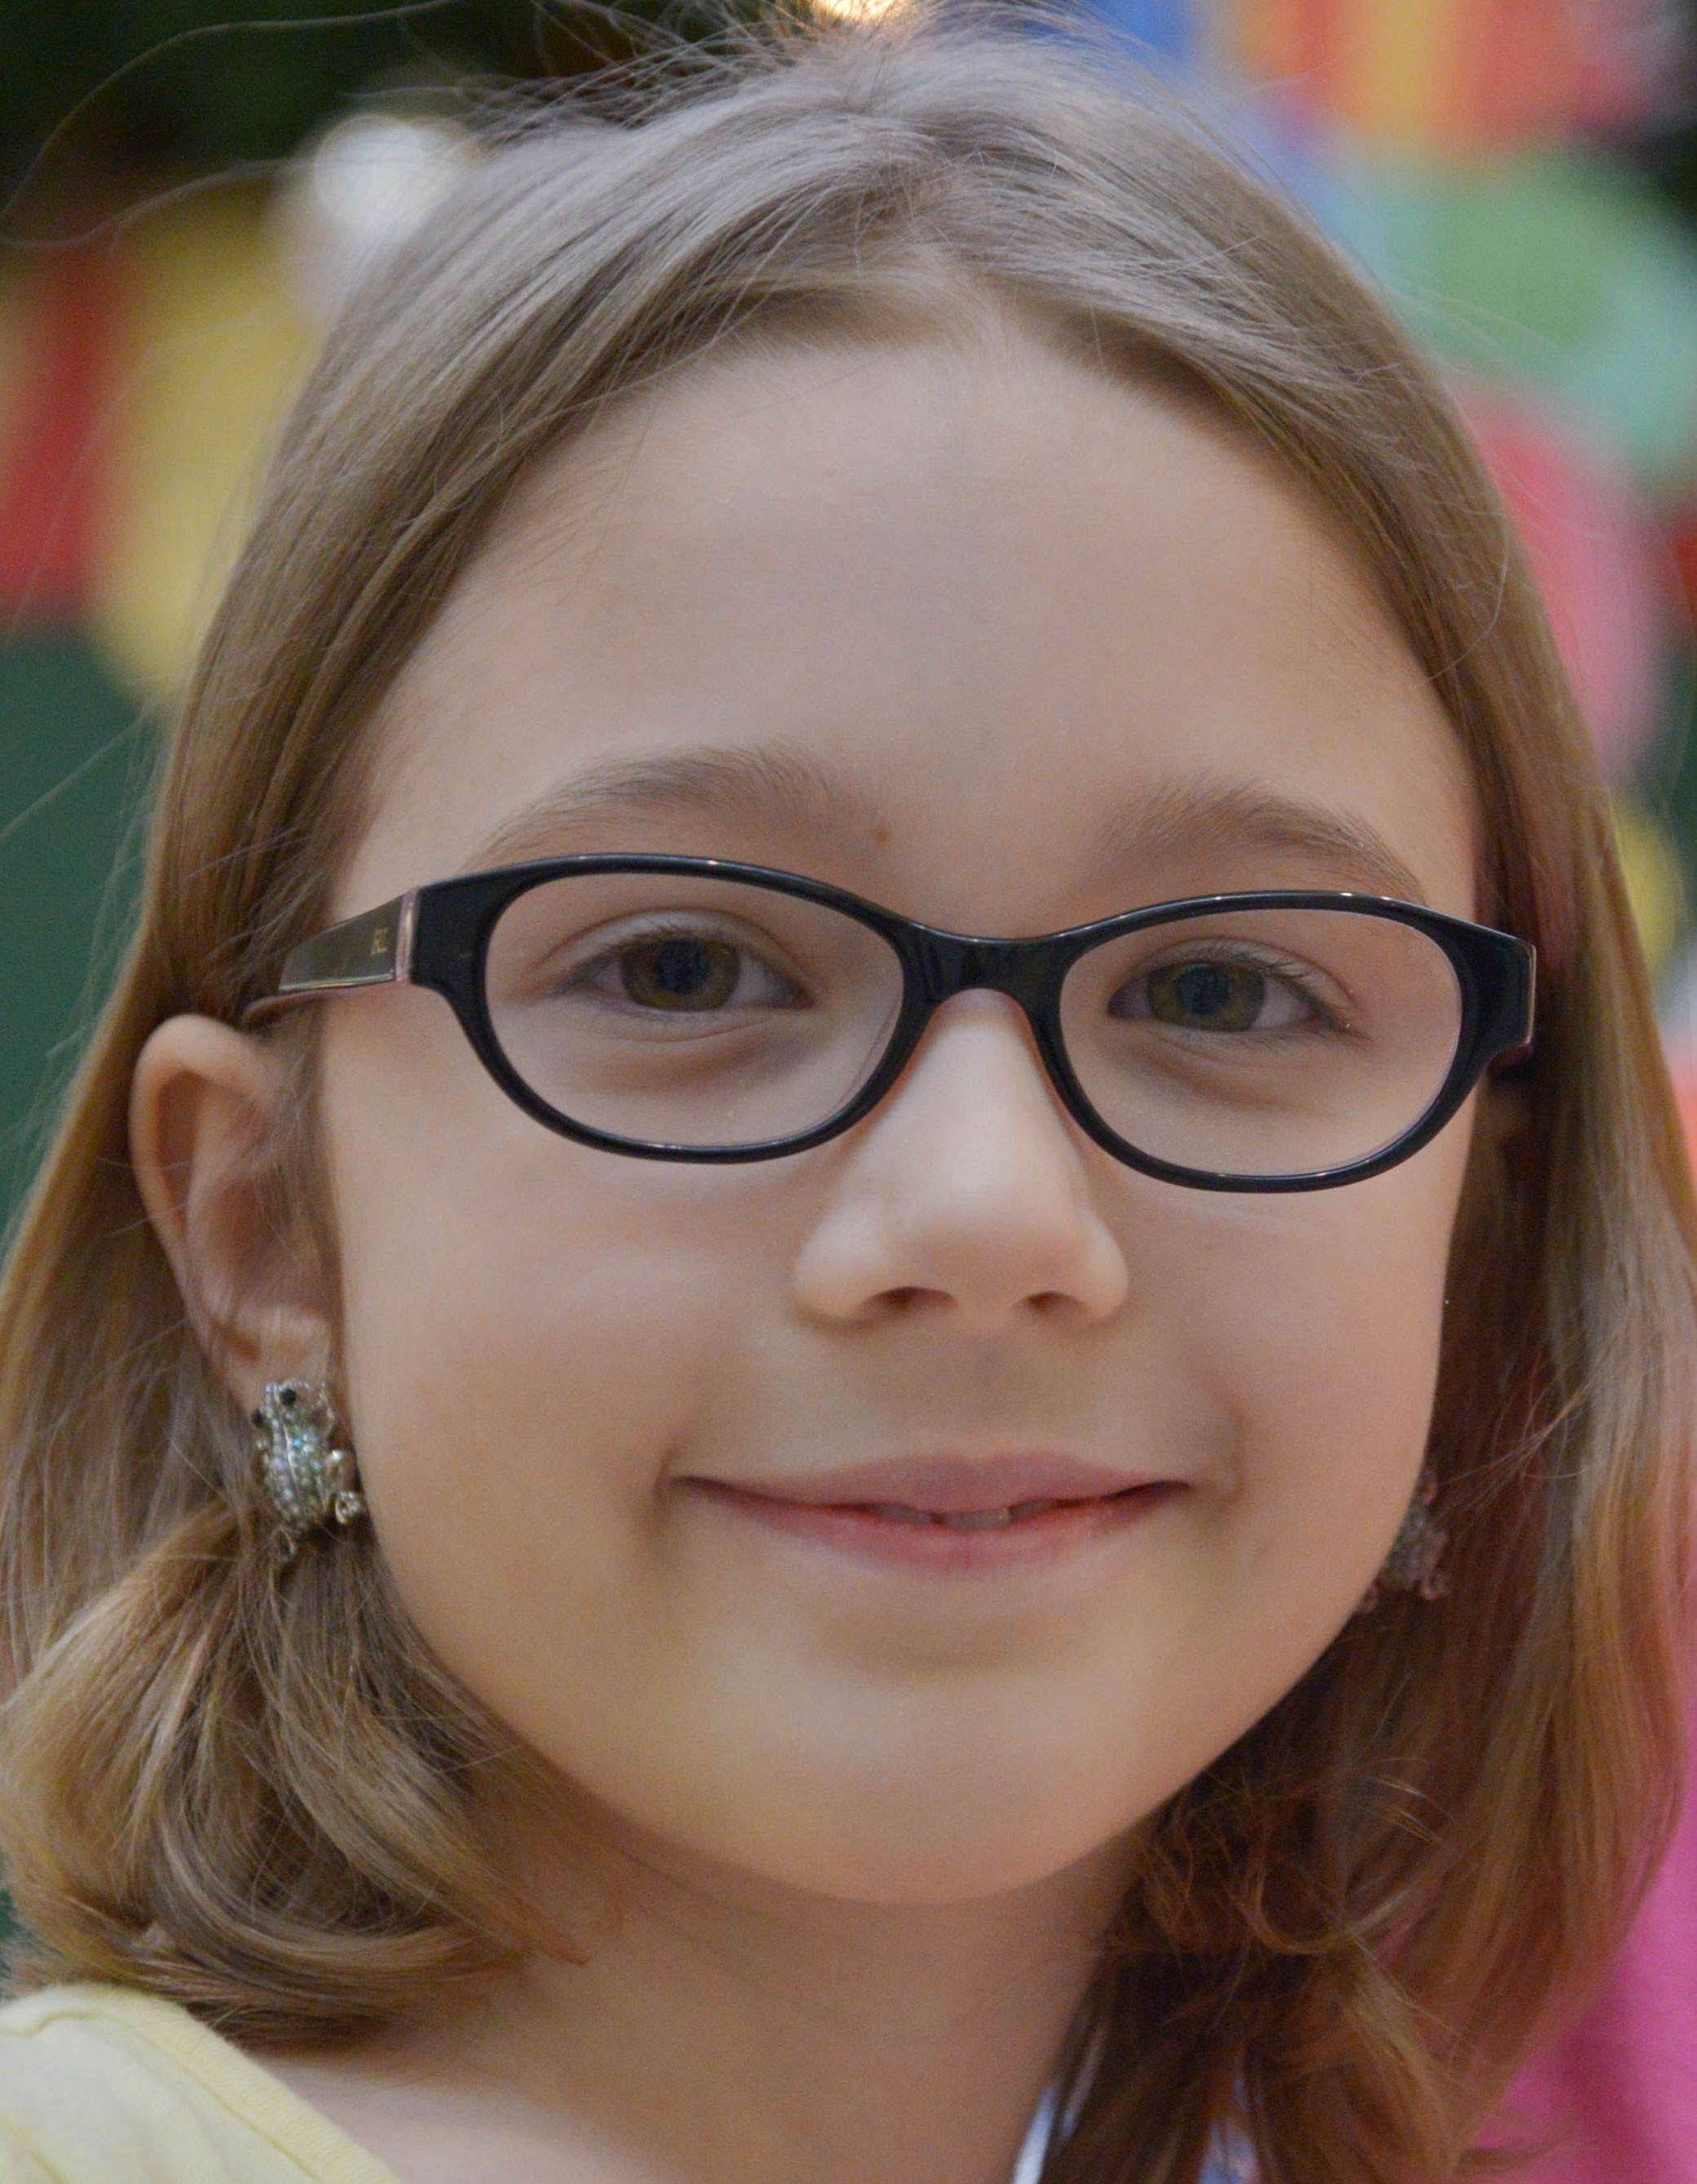 Abby Tubacki, 8, of Westmont, wants an iPod Touch and a Nintendo 3DS game system.